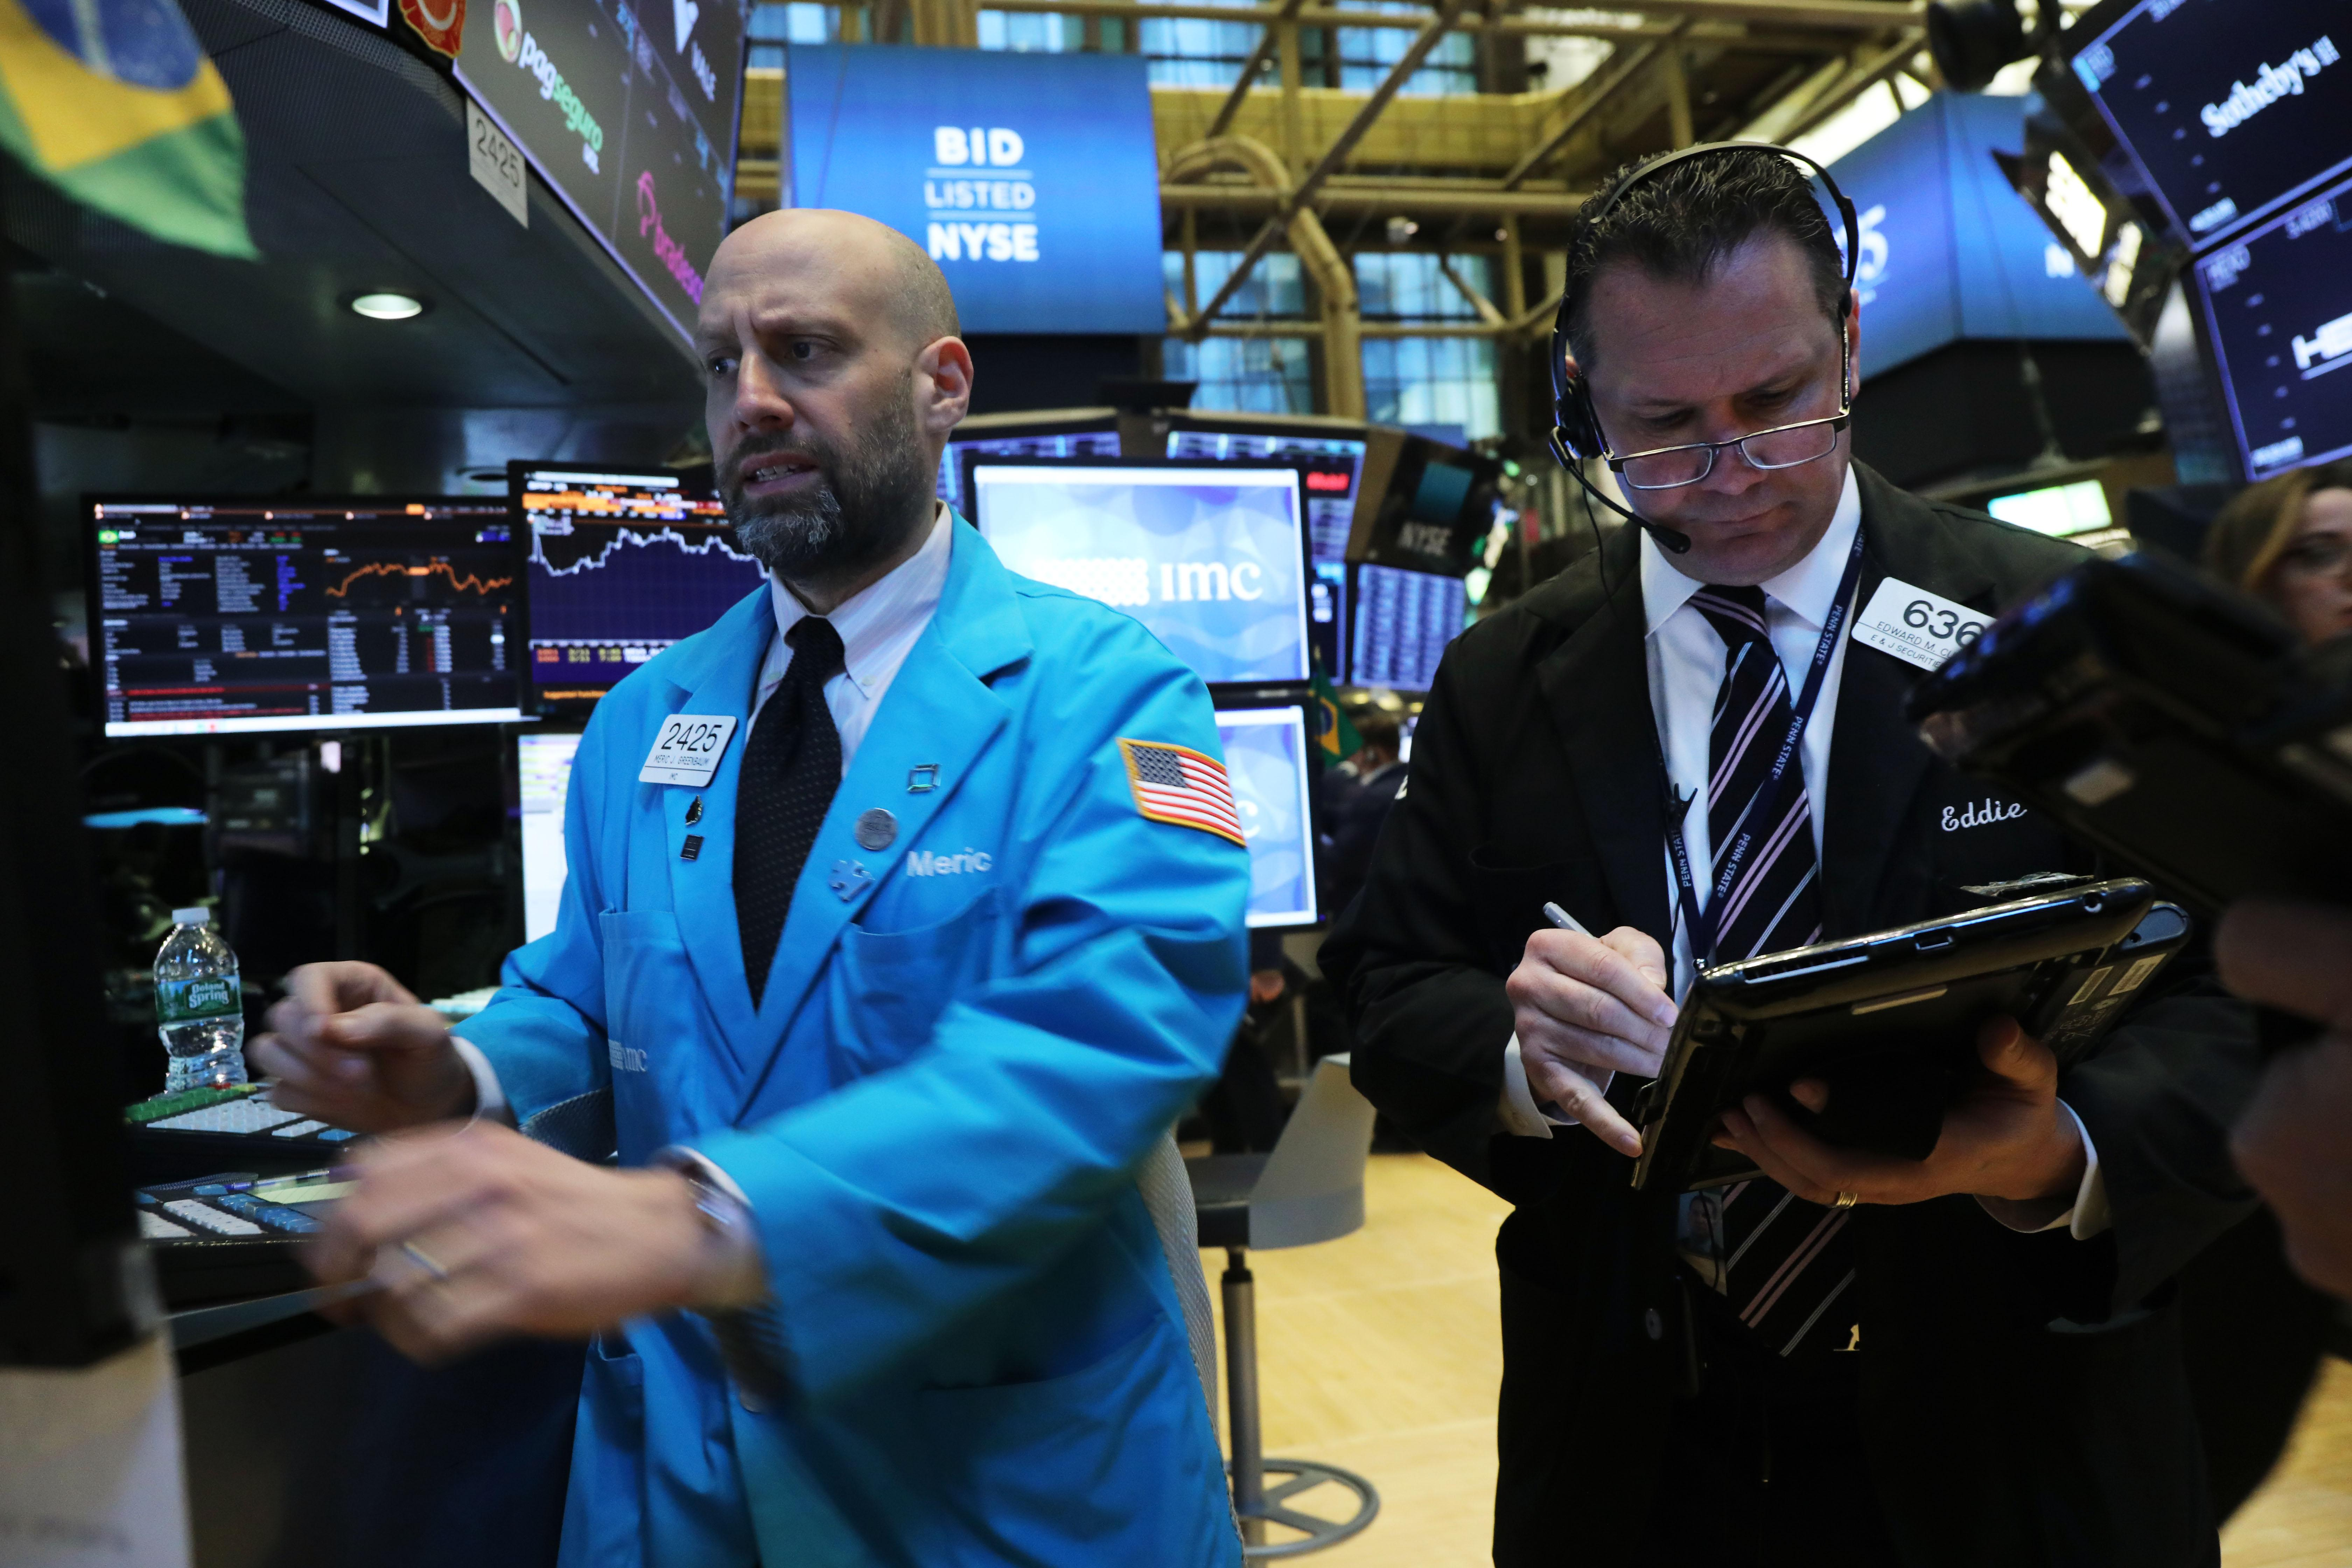 GettyImages-Stock Market March 13